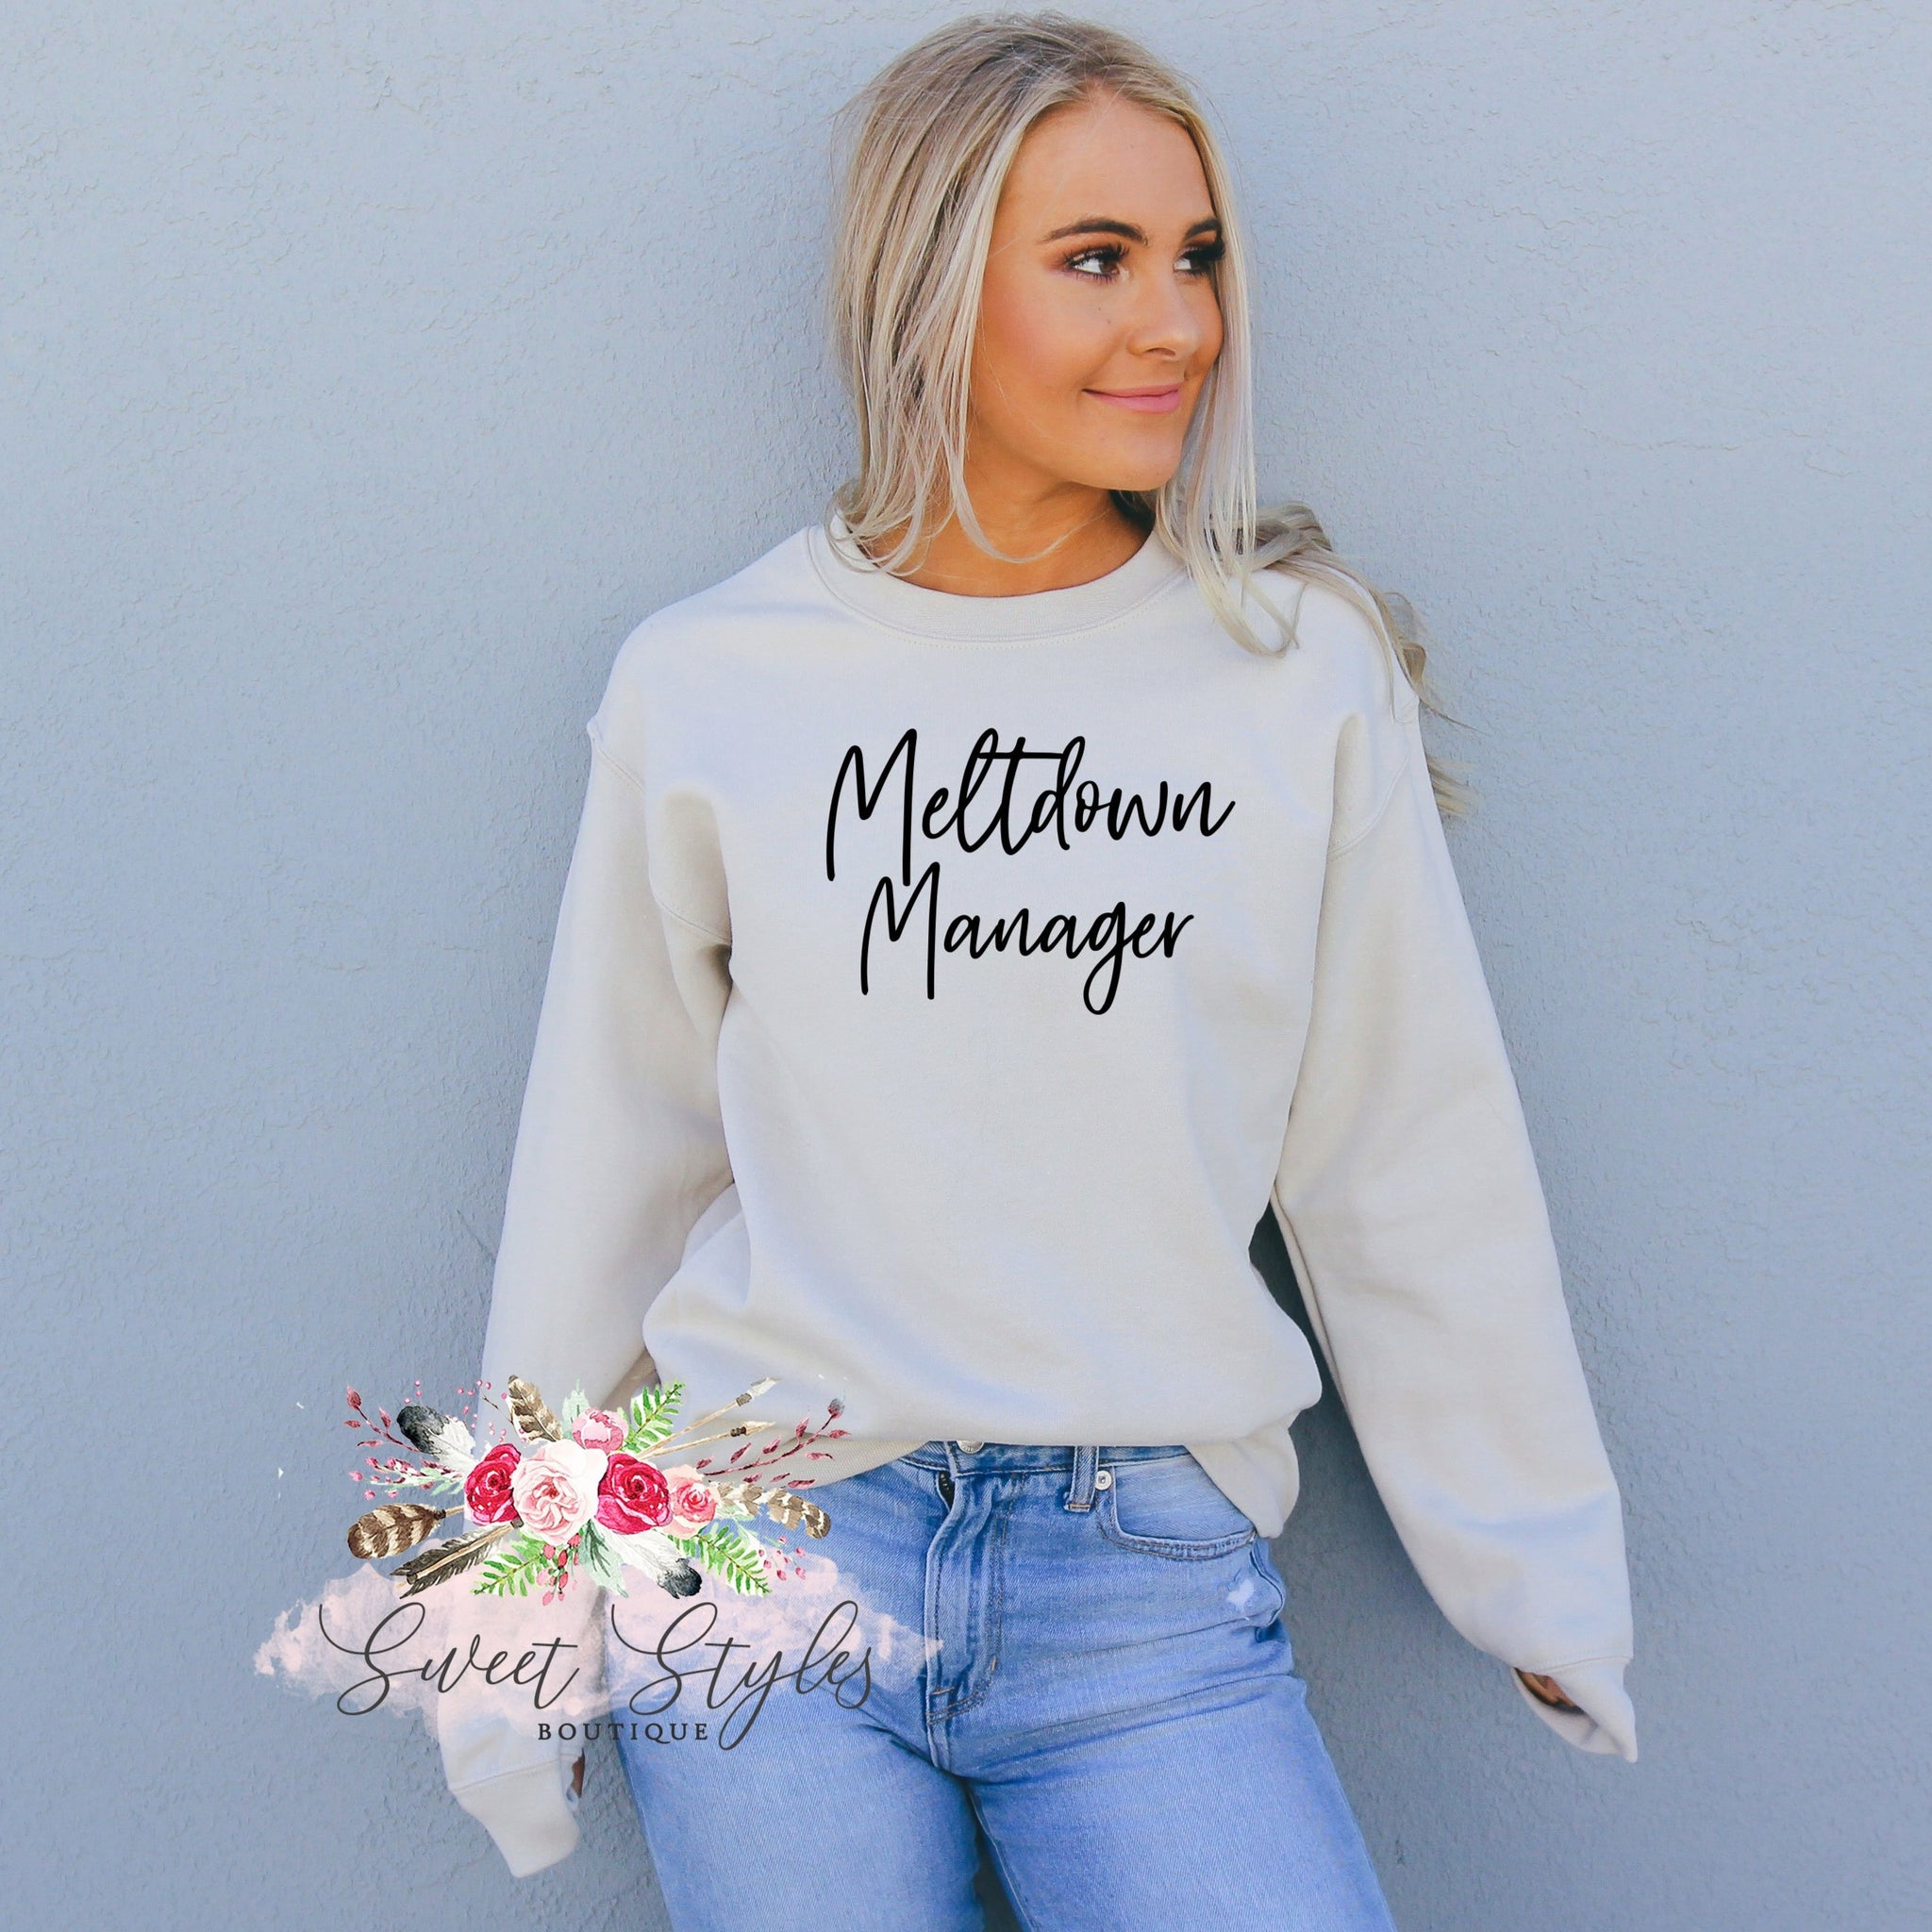 Meltdown manager sweater-Sweet Styles boutique